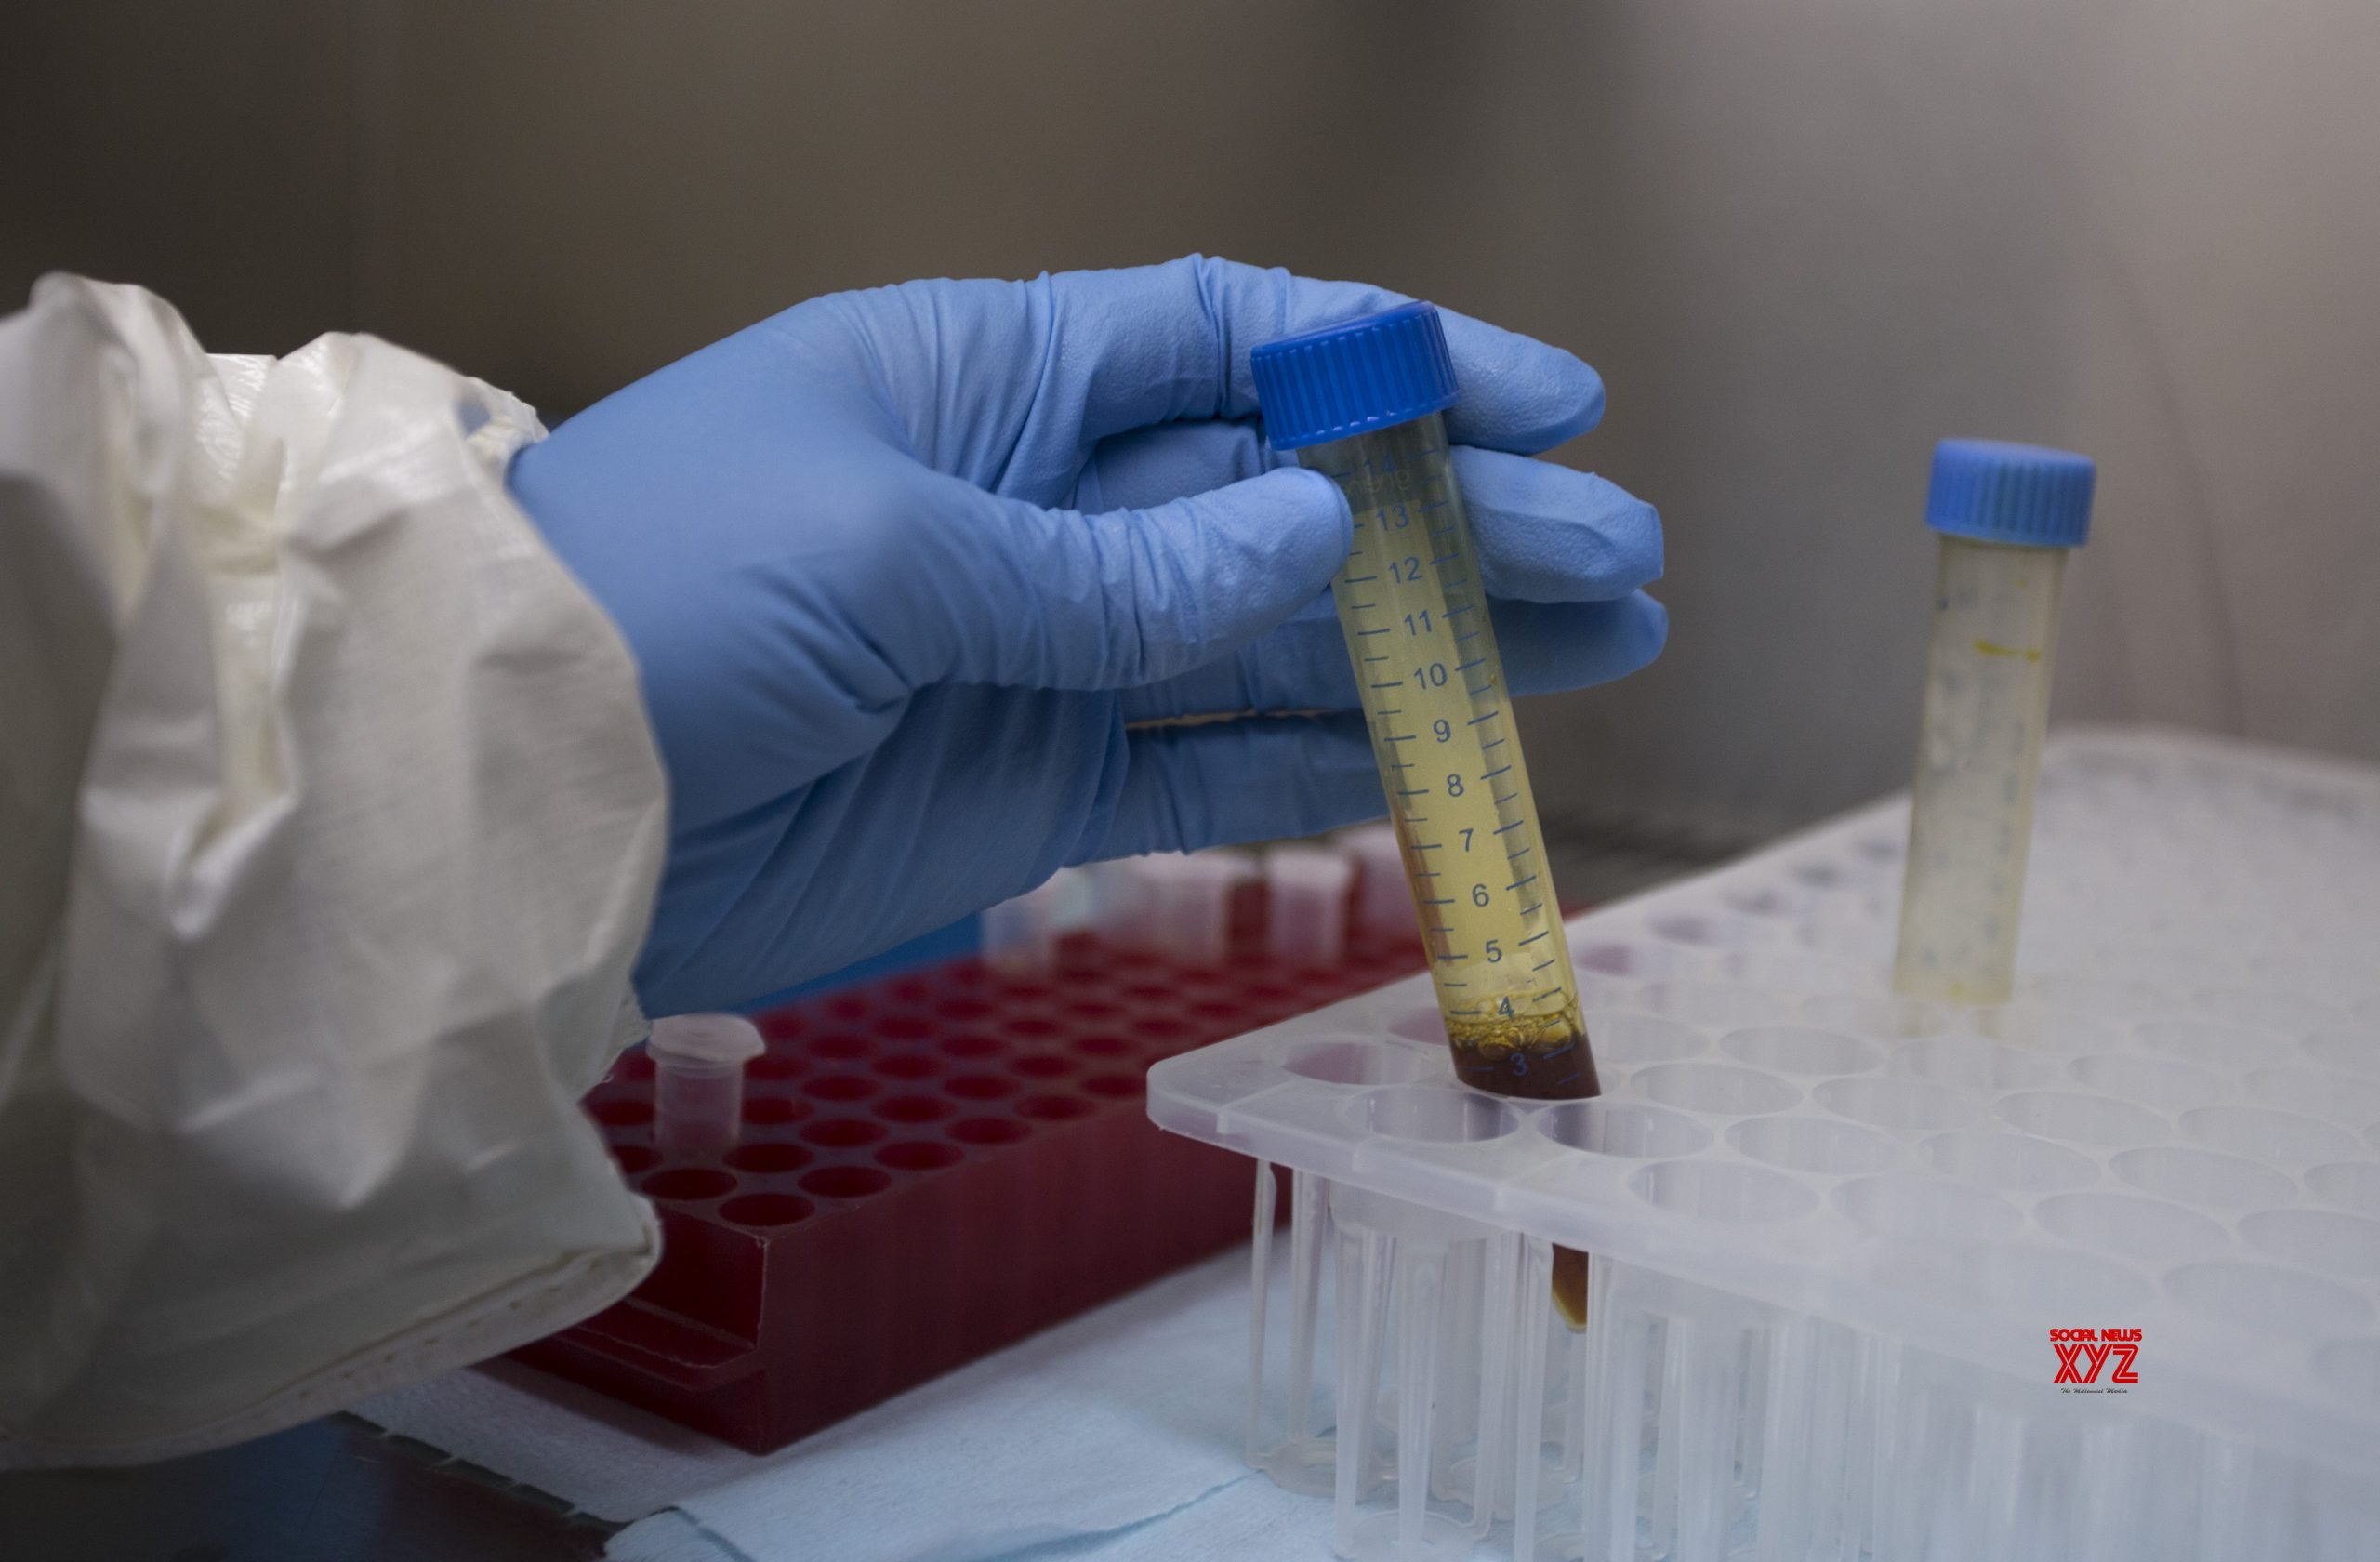 COVID-19: 121 labs approved for testing in India, says ICMR